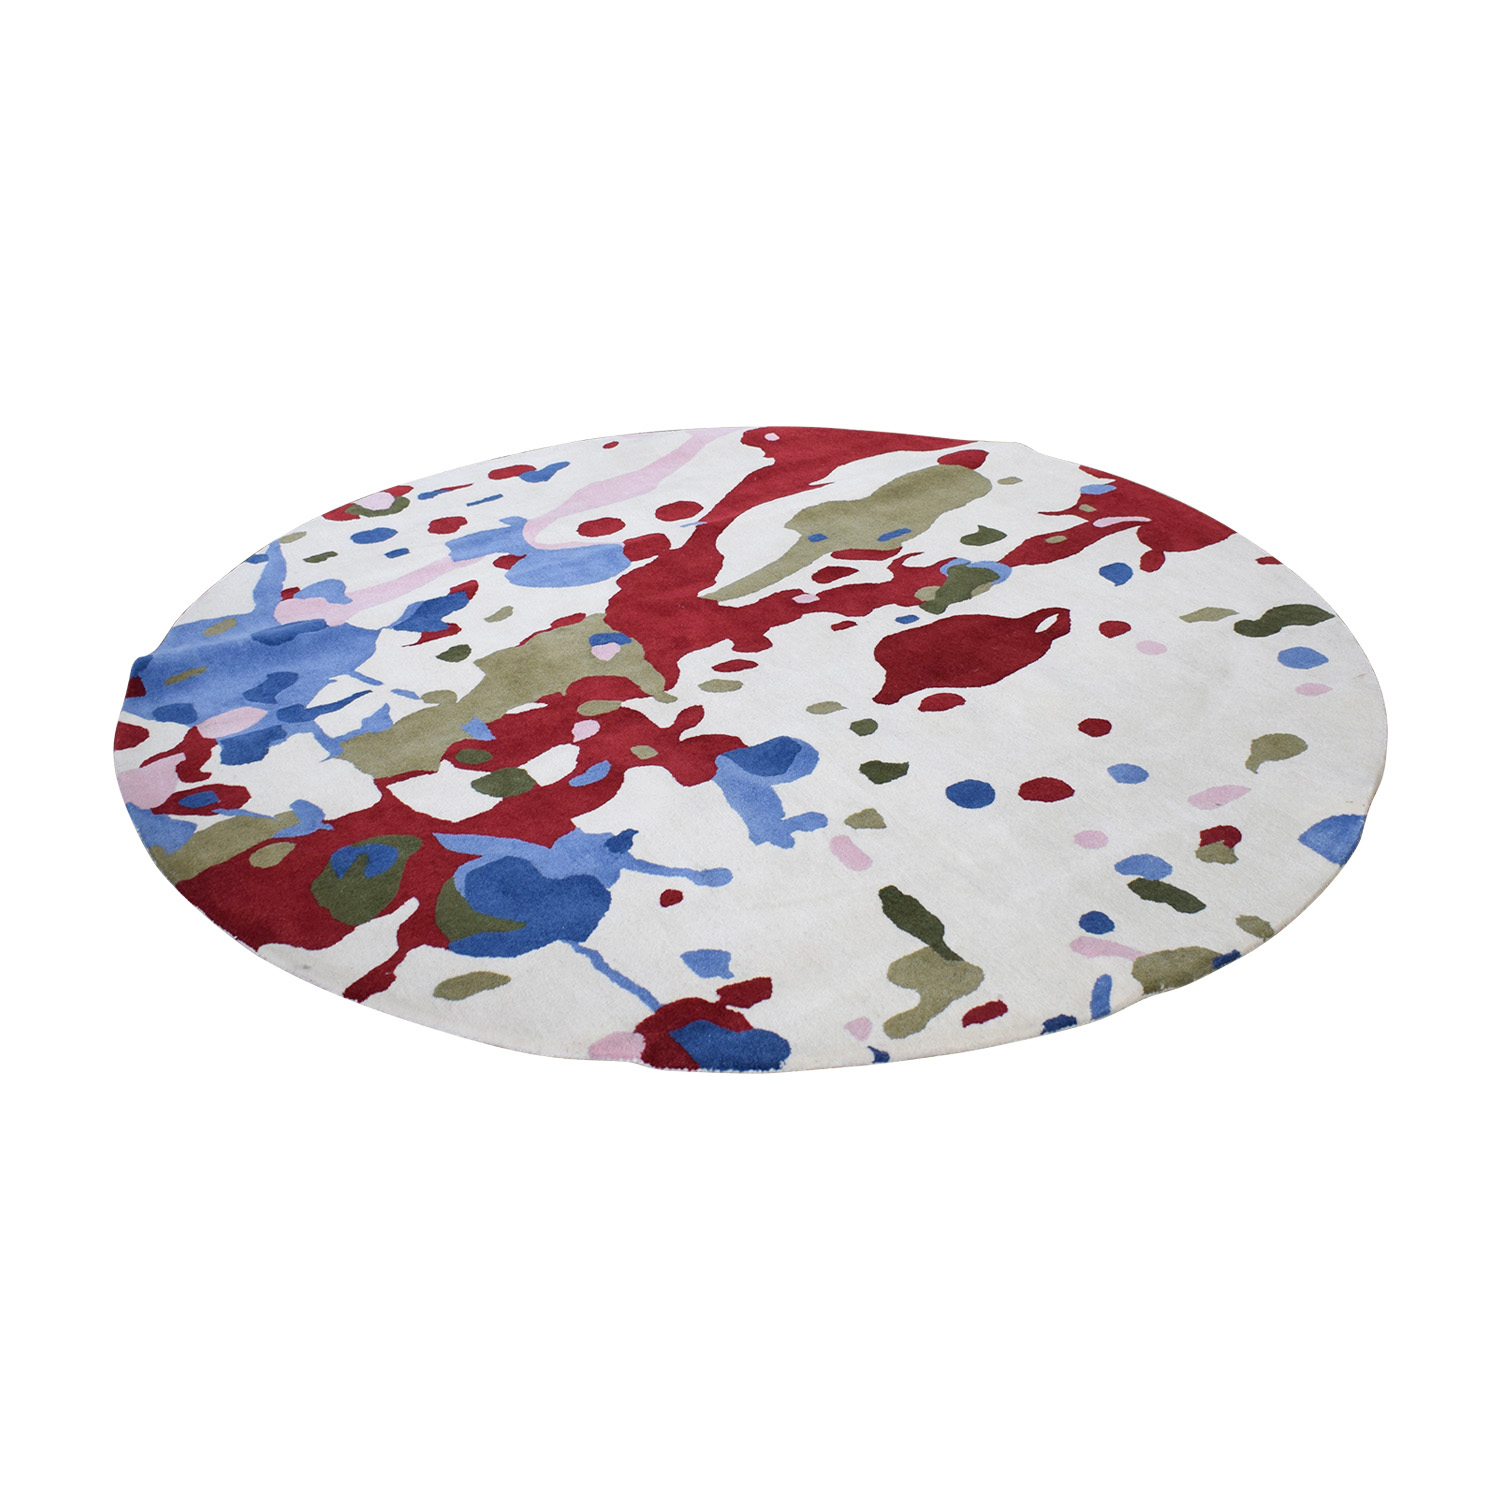 Obeetee Obeetee Round Multi-Colored Handtufted Rug coupon